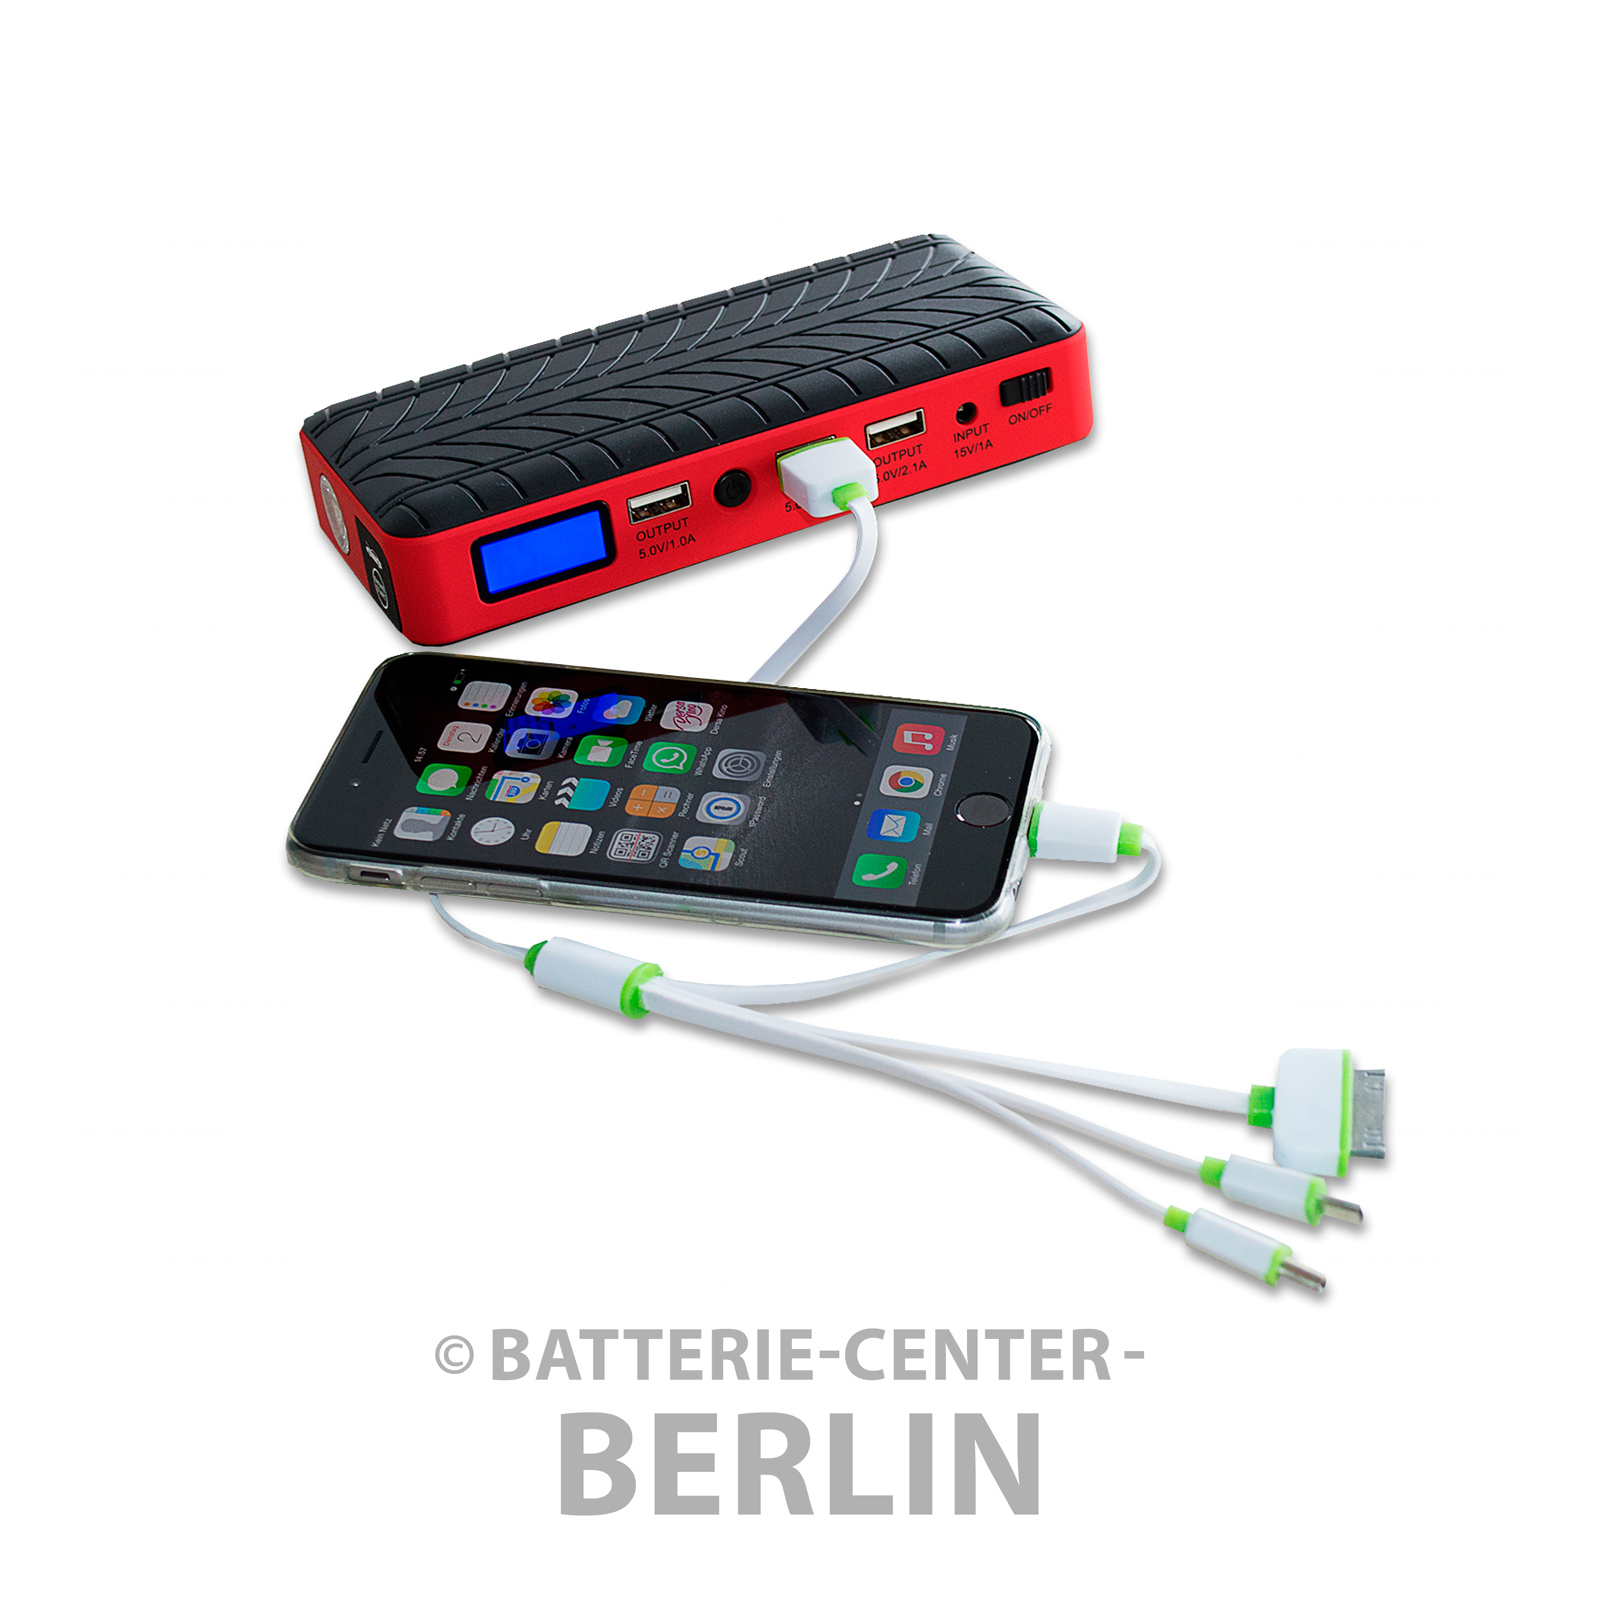 12 v jumpstarter powerbank auto batterie ladeger t mit display kfz. Black Bedroom Furniture Sets. Home Design Ideas